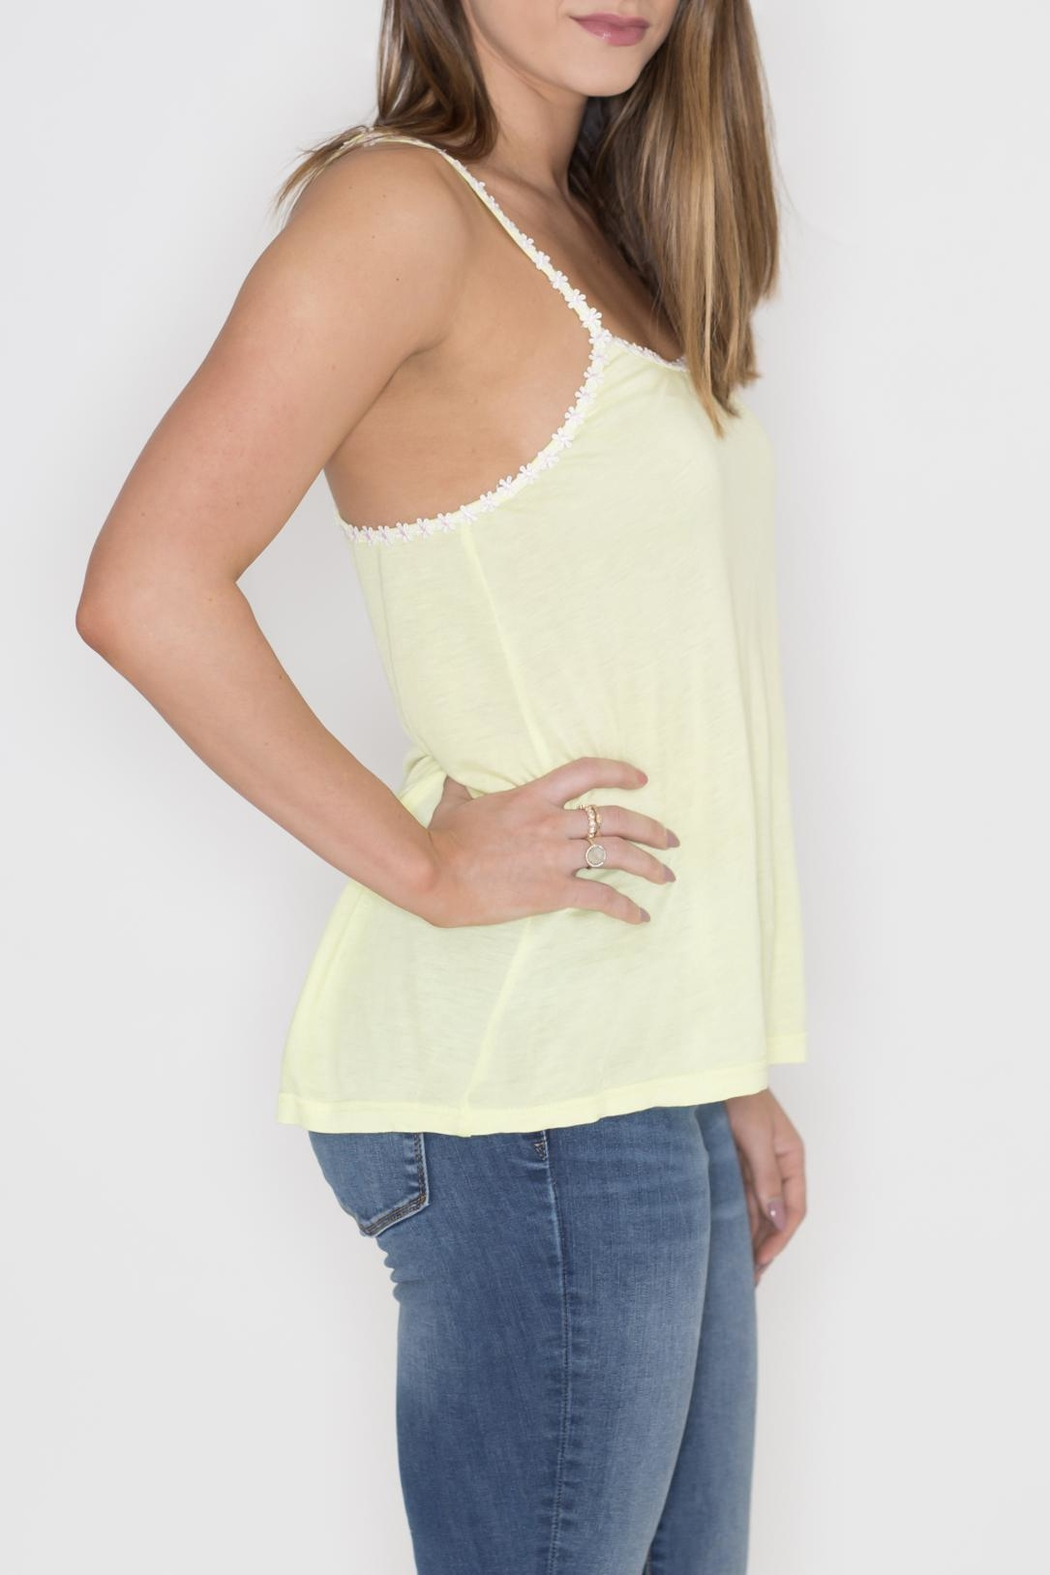 Very J Daisy Trim Tank Top - Front Full Image